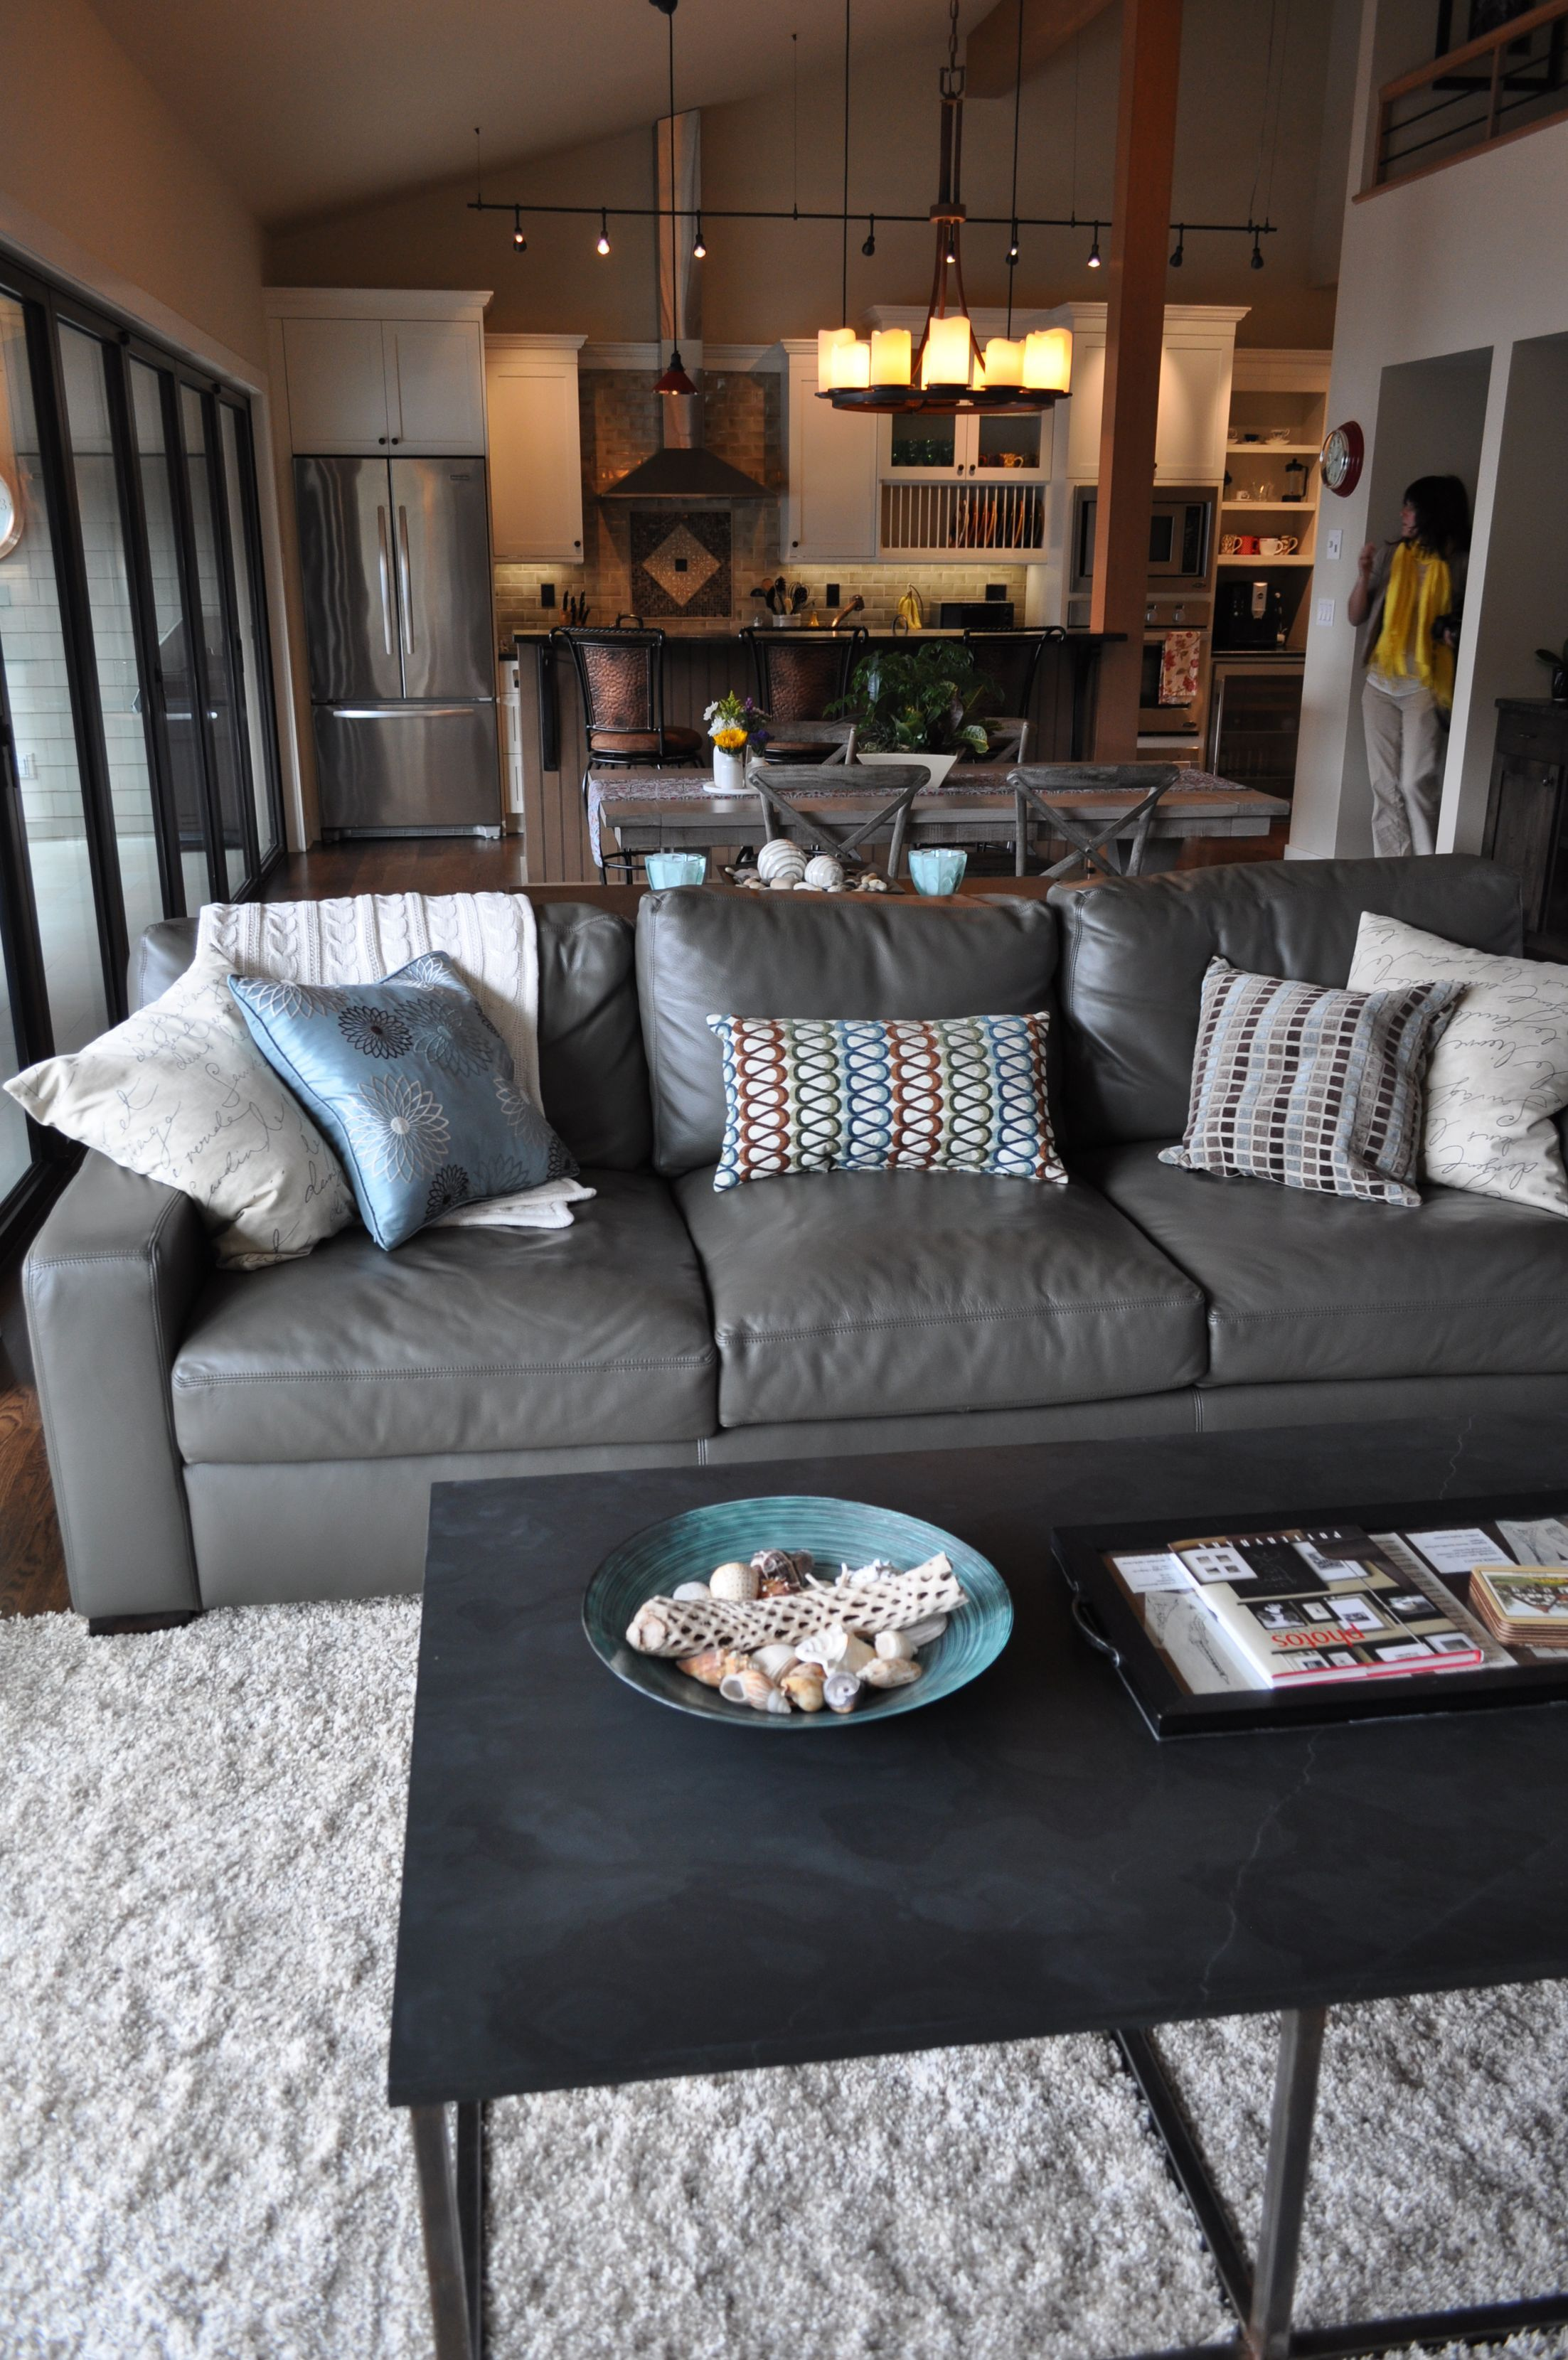 Living Room Sofa Photos Nolana Bed The 25 43 Best Grey Leather Couch Ideas On Pinterest Brown